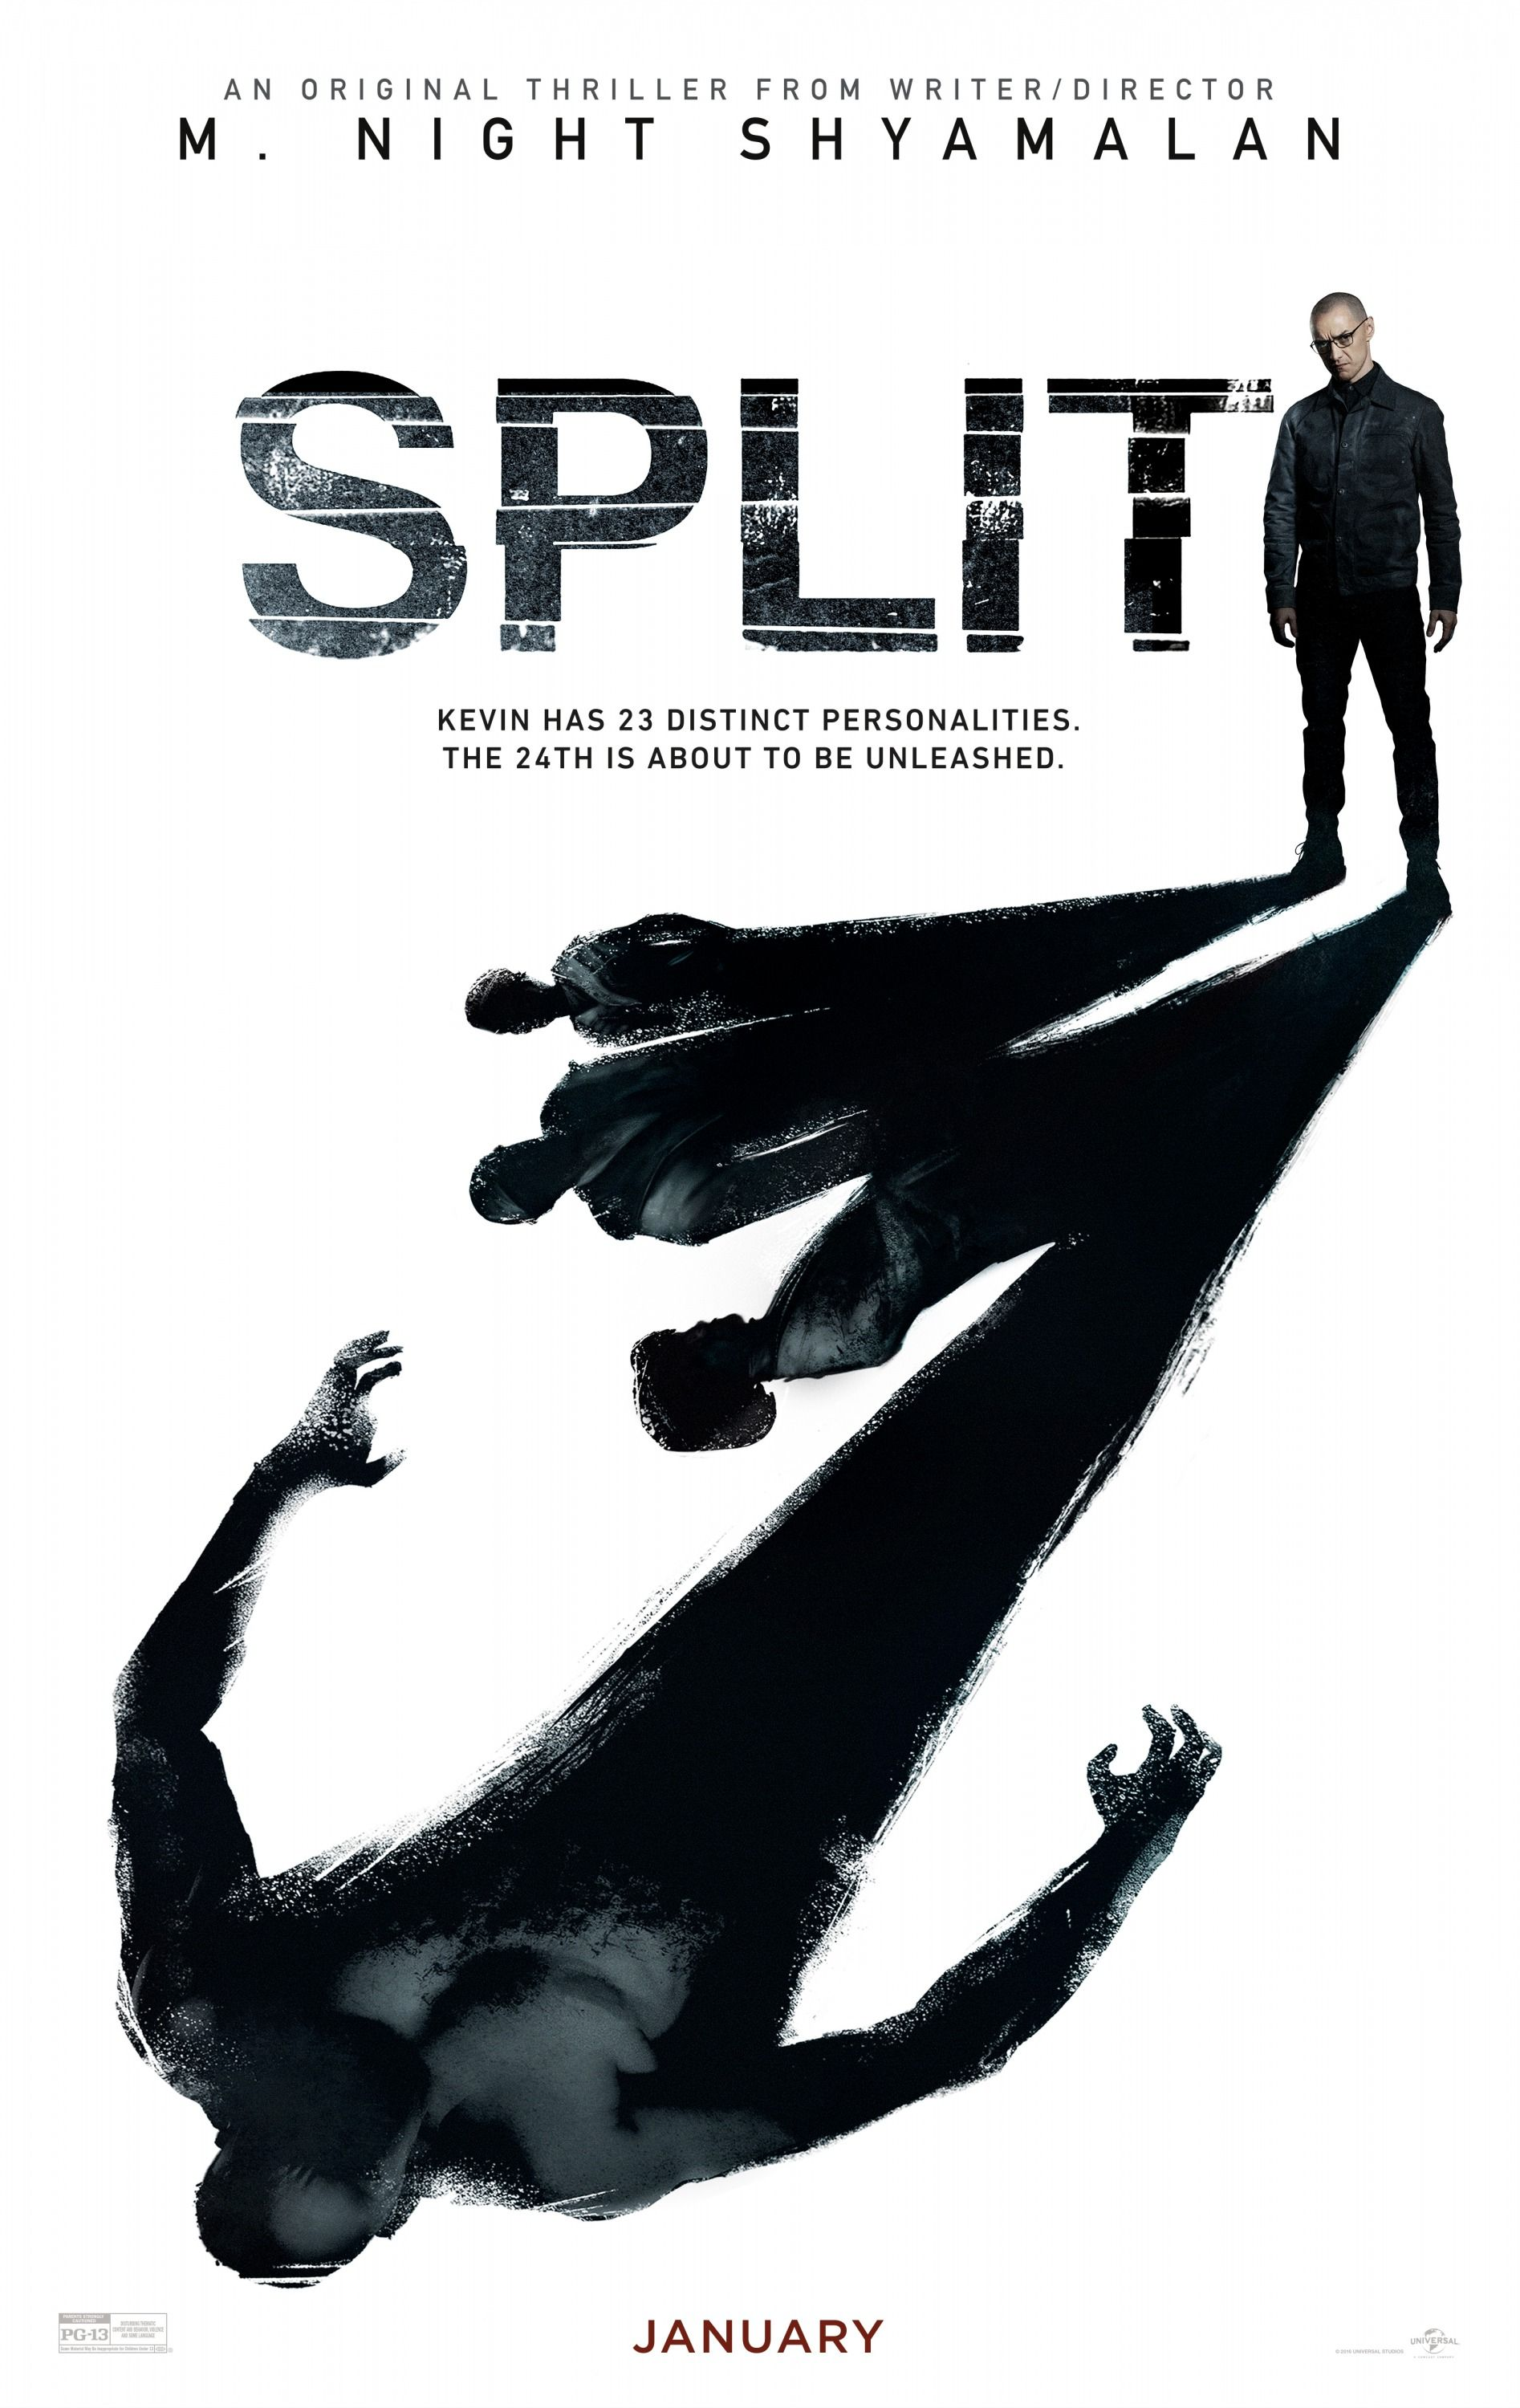 Poster design ideas online free - Watch Split 2017 Full Movie Online For Free Streaming Live Hd